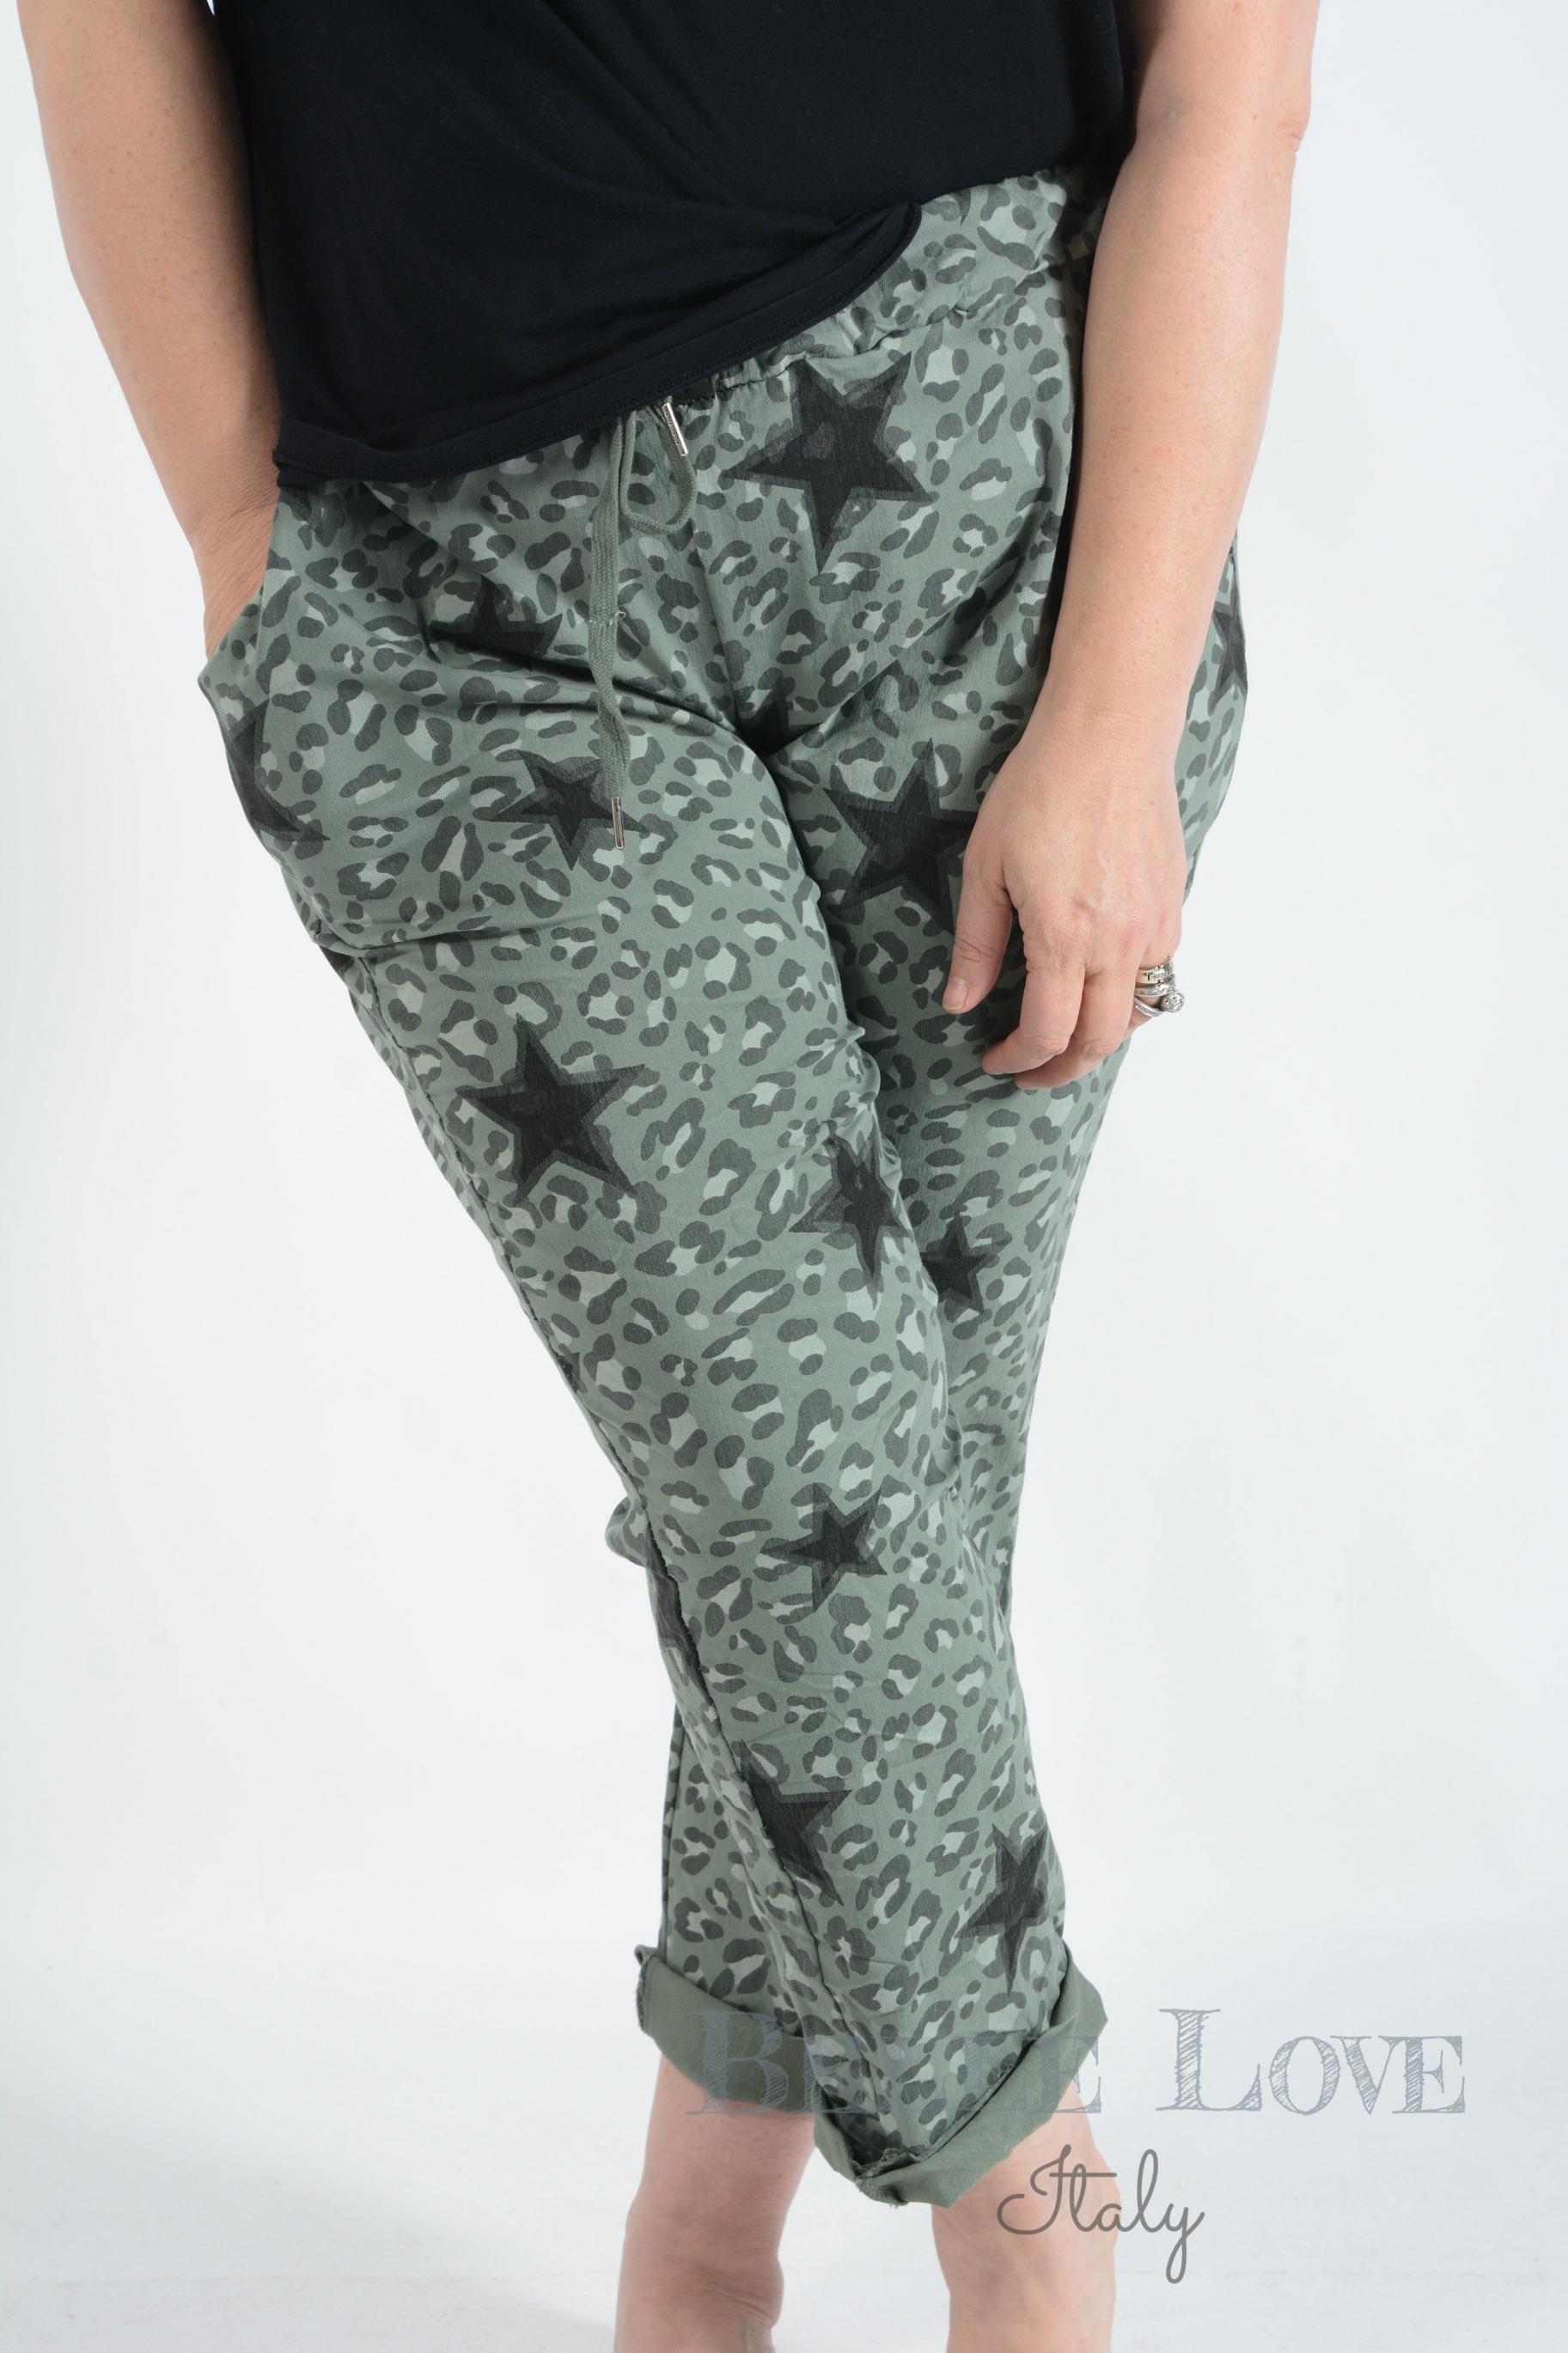 Belle Love Italy Maya Stars & Leopard Print Magic Pants